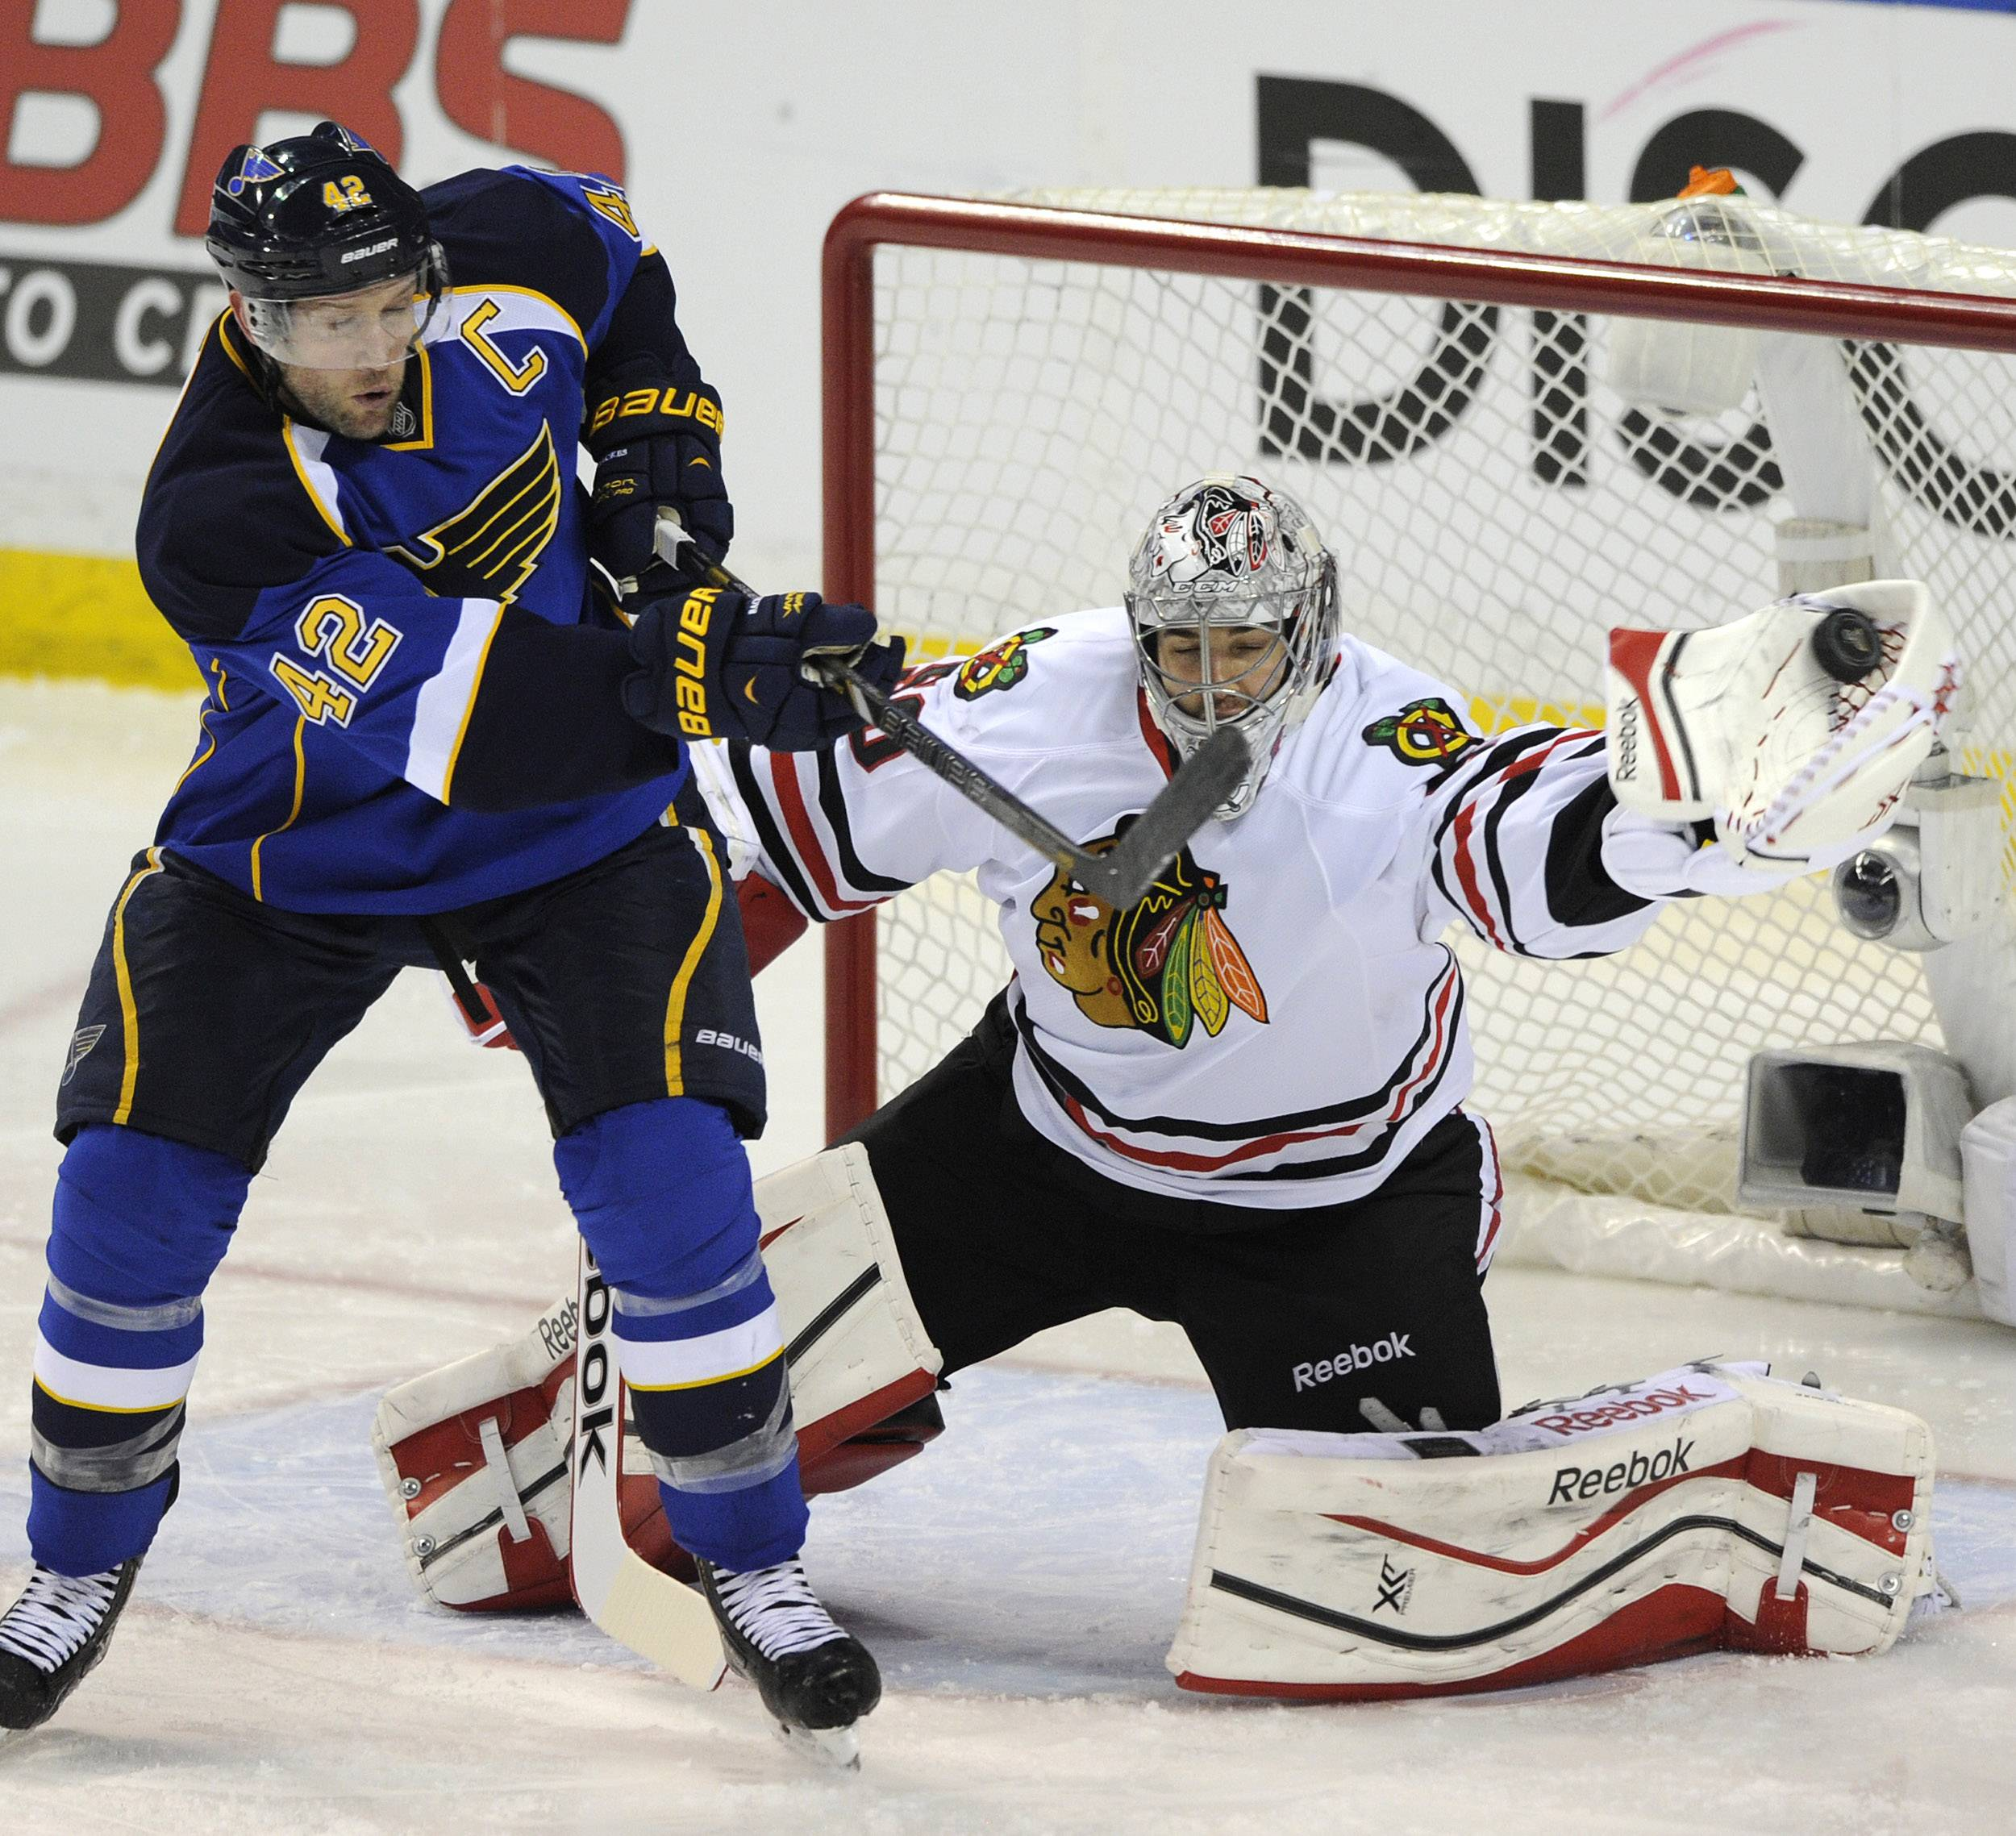 Blackhawks goalie Corey Crawford makes a glove-save against the Blues' David Backes during the second period in Game 2 on Saturday in St. Louis.